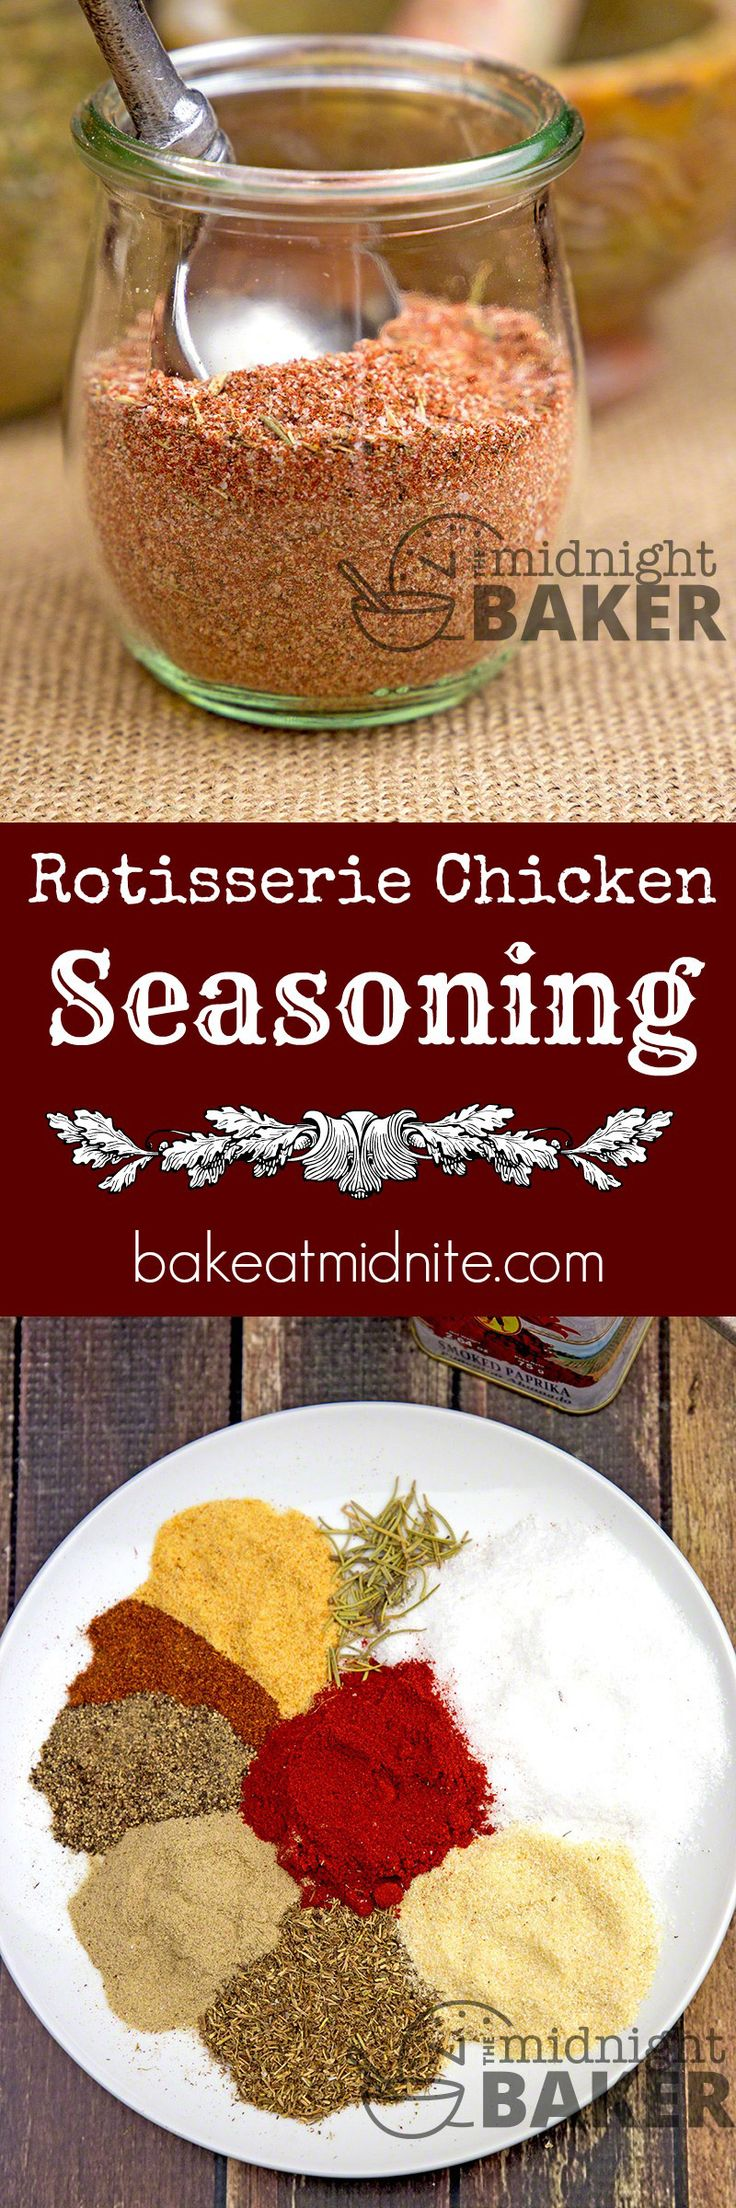 Now you can make your own delicious rotisserie chicken at home with this tasty seasoning.